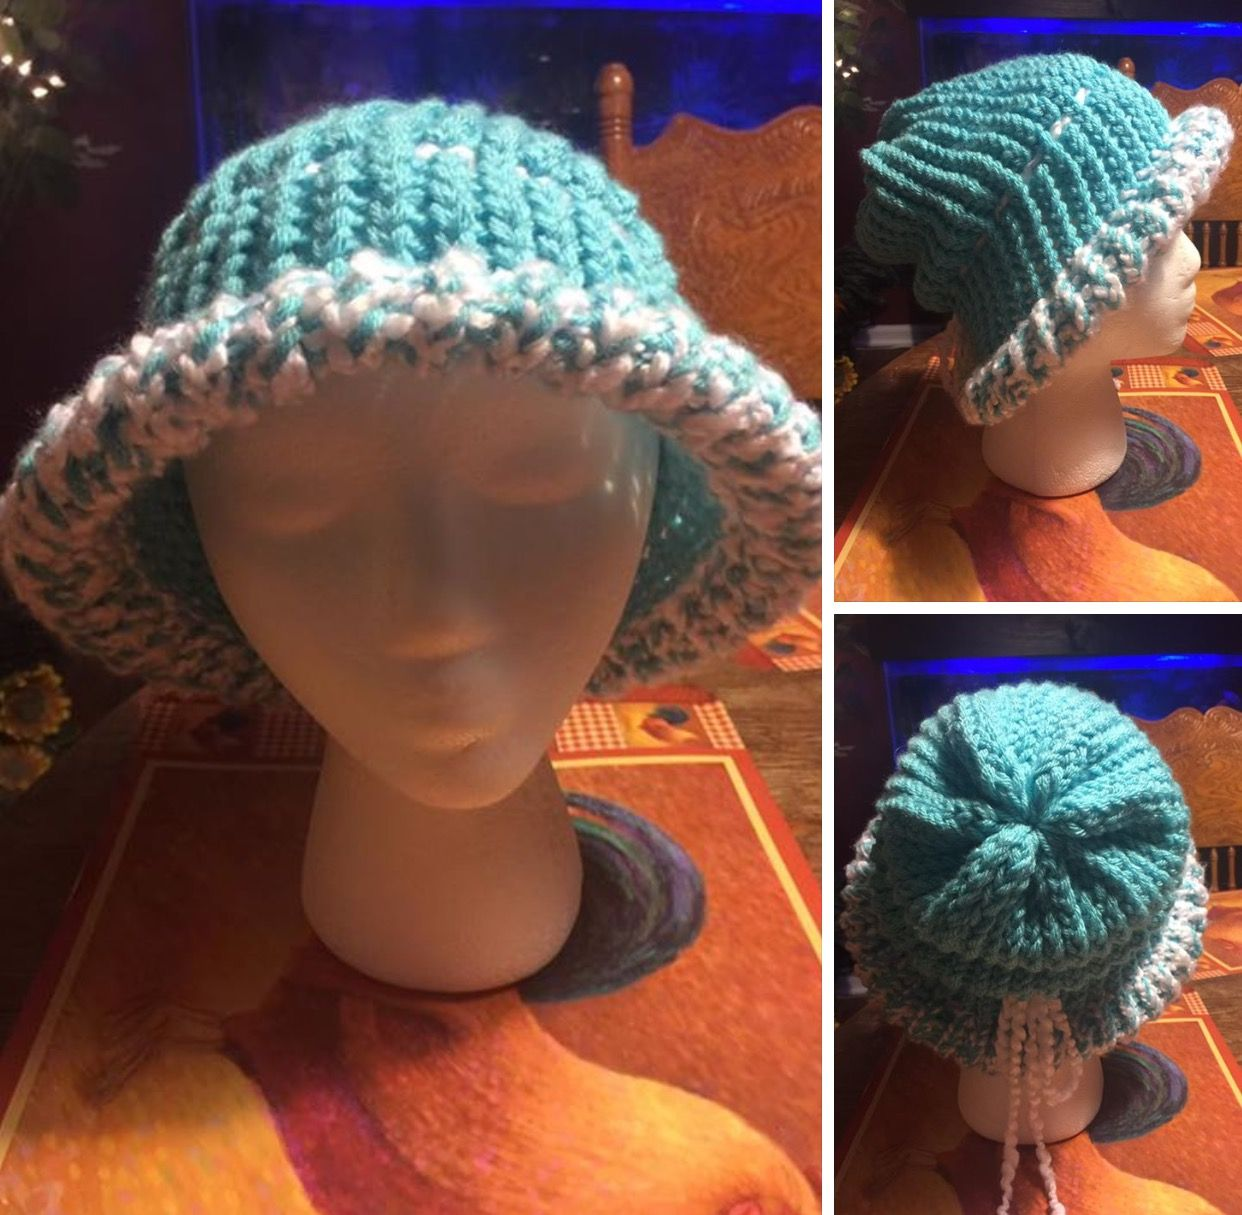 eb77a796df0 My summer hat I made on my knitting loom showing different angles of the hat !